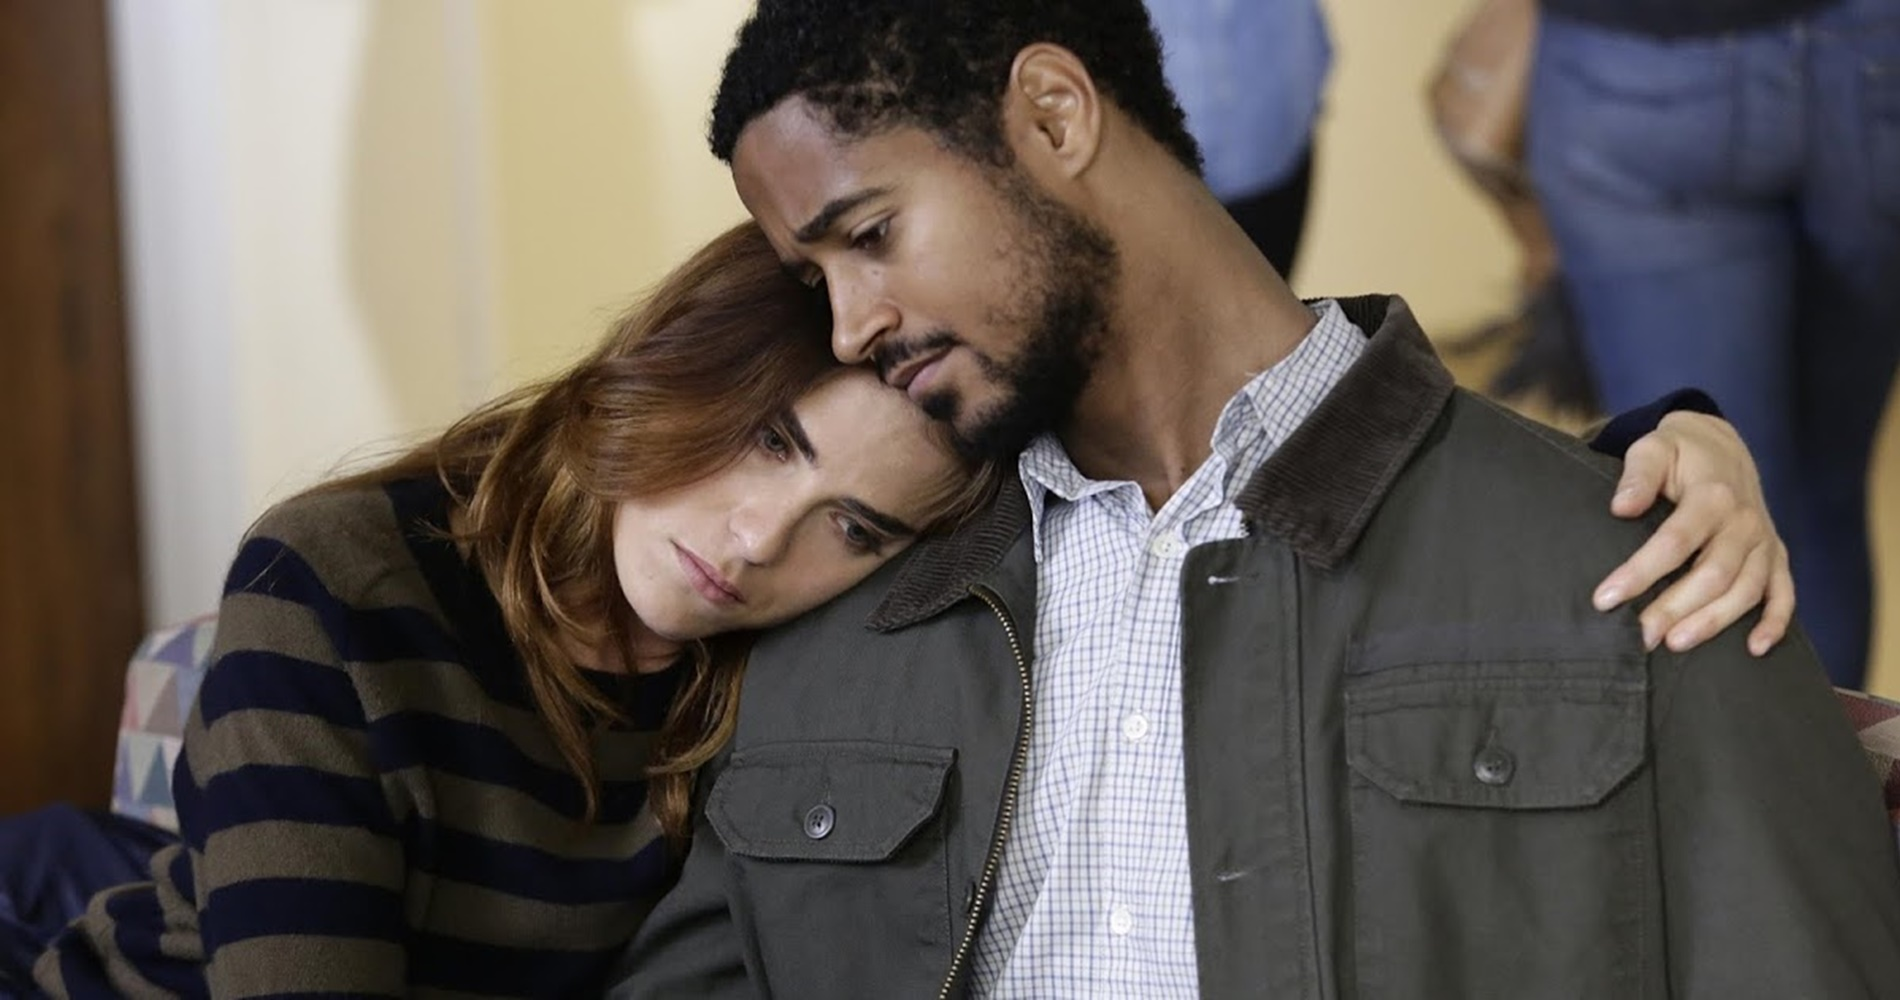 Laurel lying her head on Wes' shoulder from How To Get Away With Murder., movies/tv, pop culture, wdc-slideshow